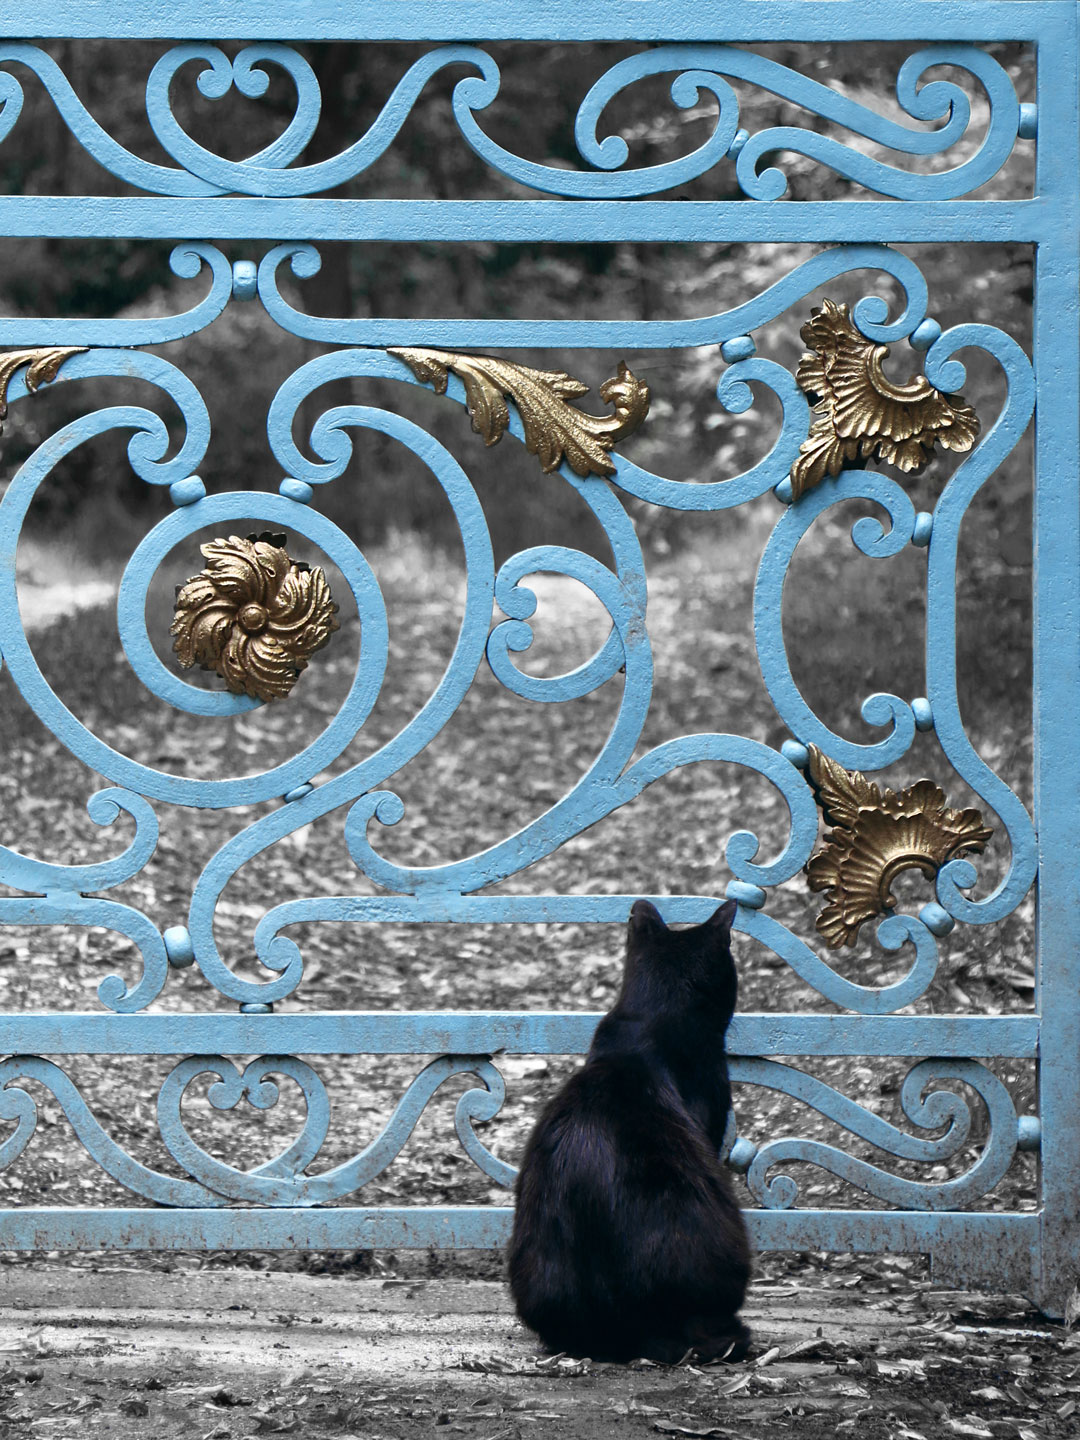 French Photographer Art Photography The Cat & the Gate